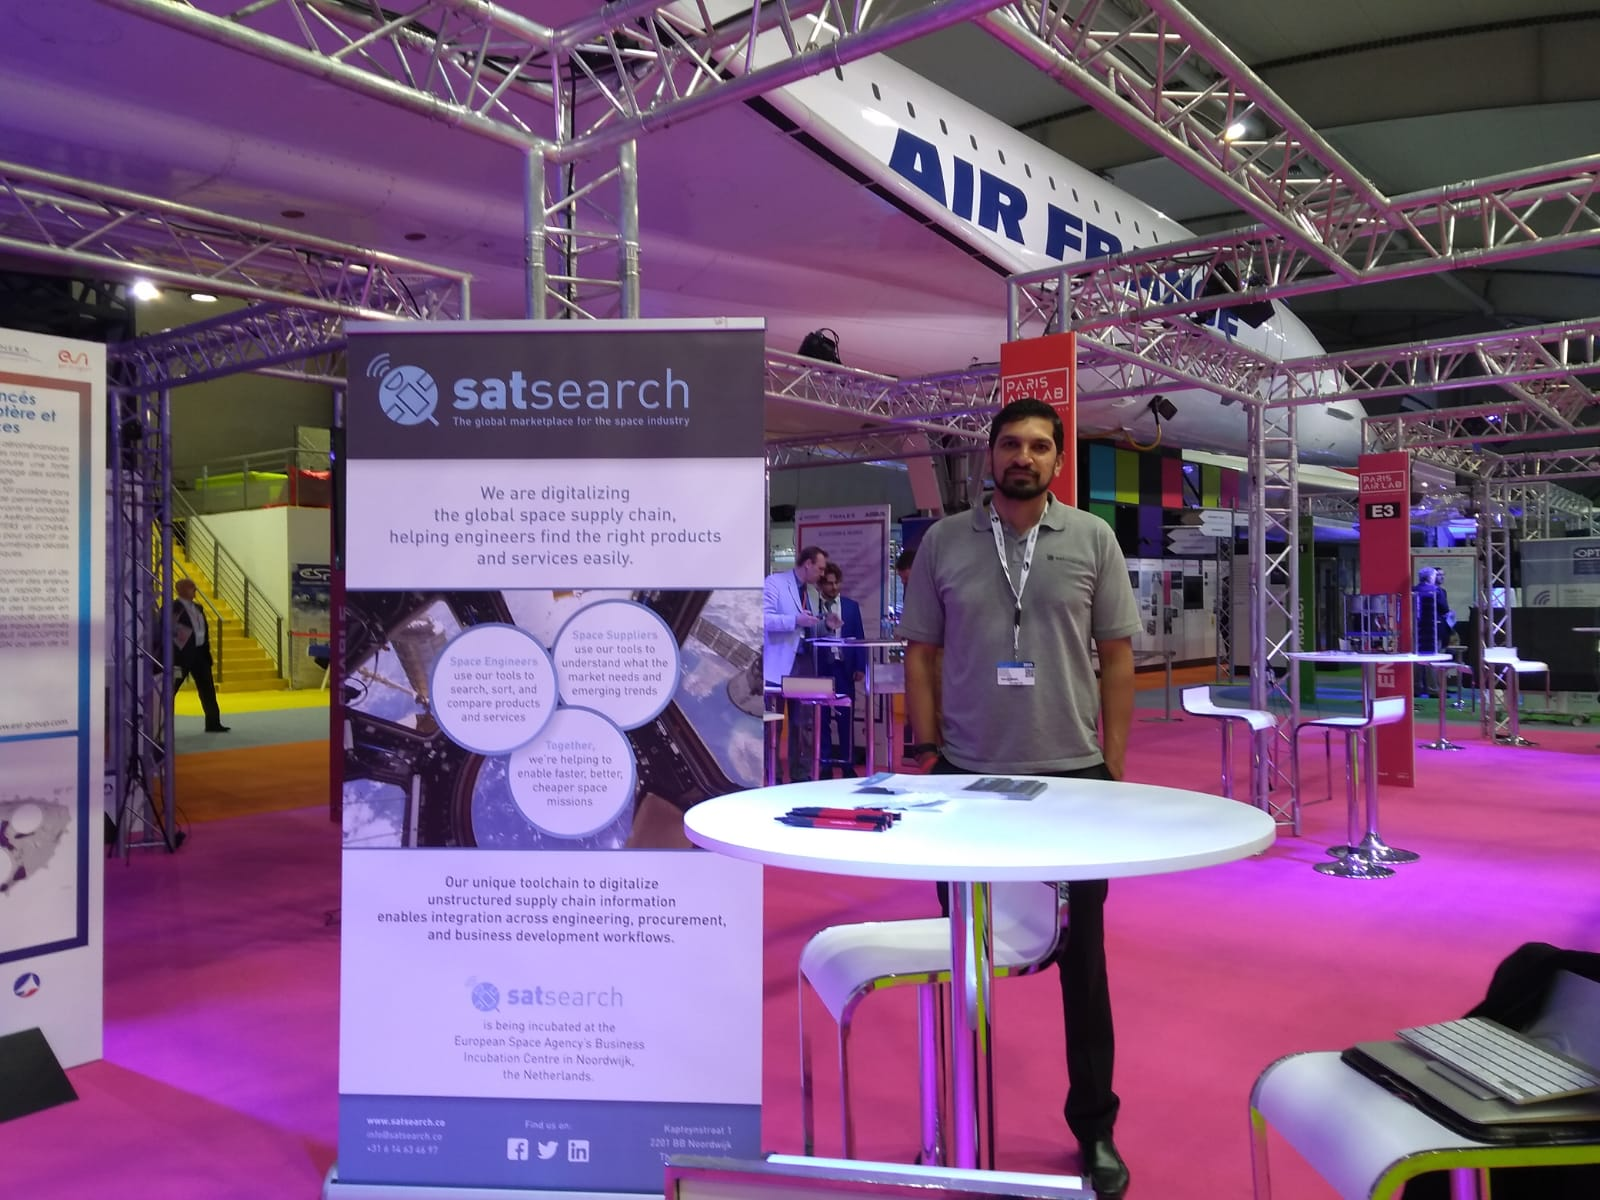 The satsearch booth at the Paris Air Show